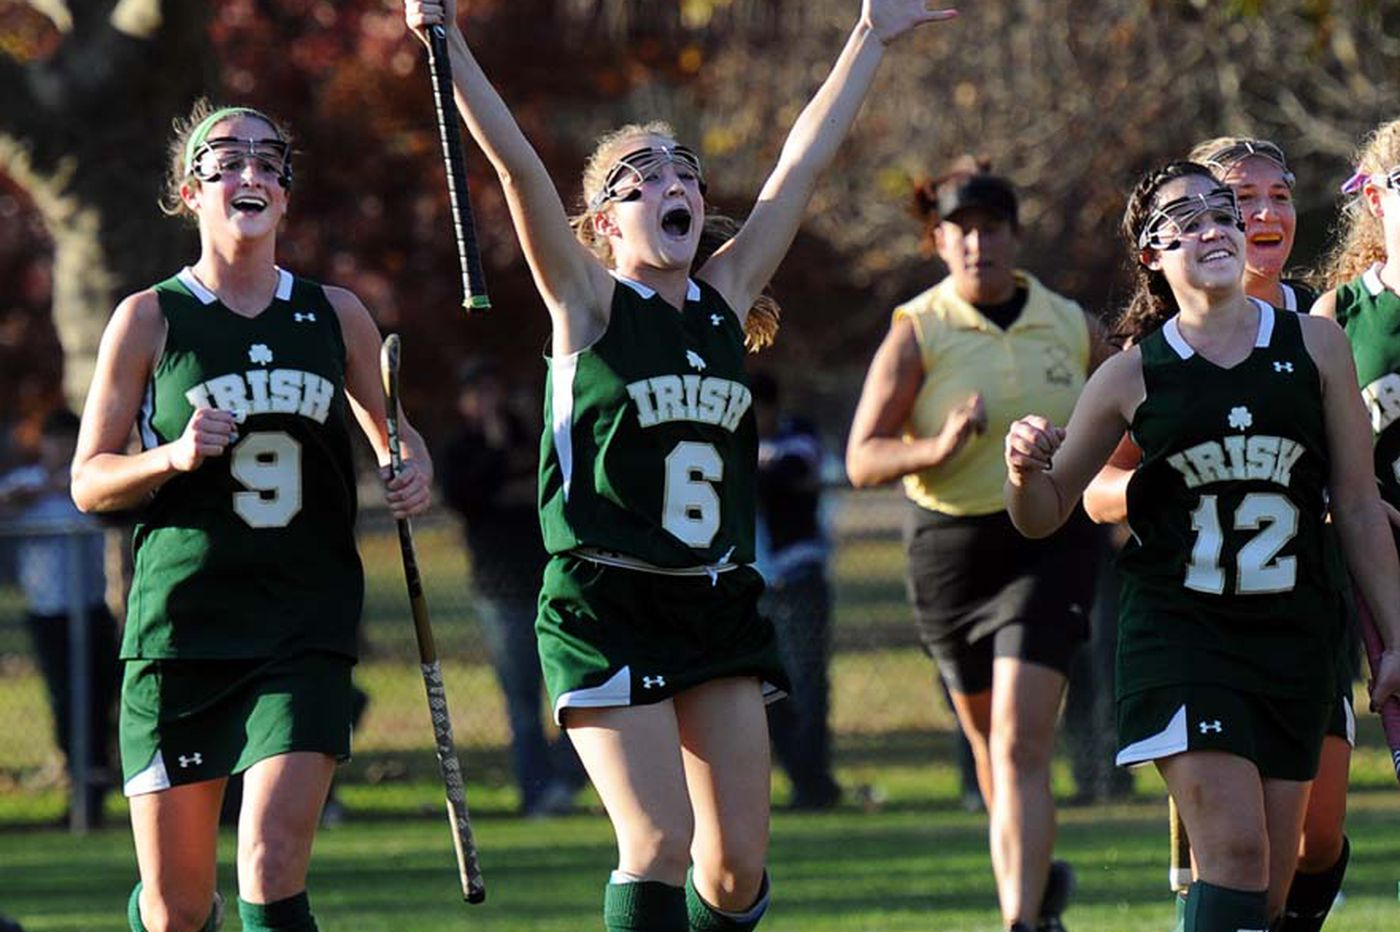 Wednesday's South Jersey roundup: Jackie Barr's game-winner in OT sends Moorestown Friends to Non-Public field hockey semifinals